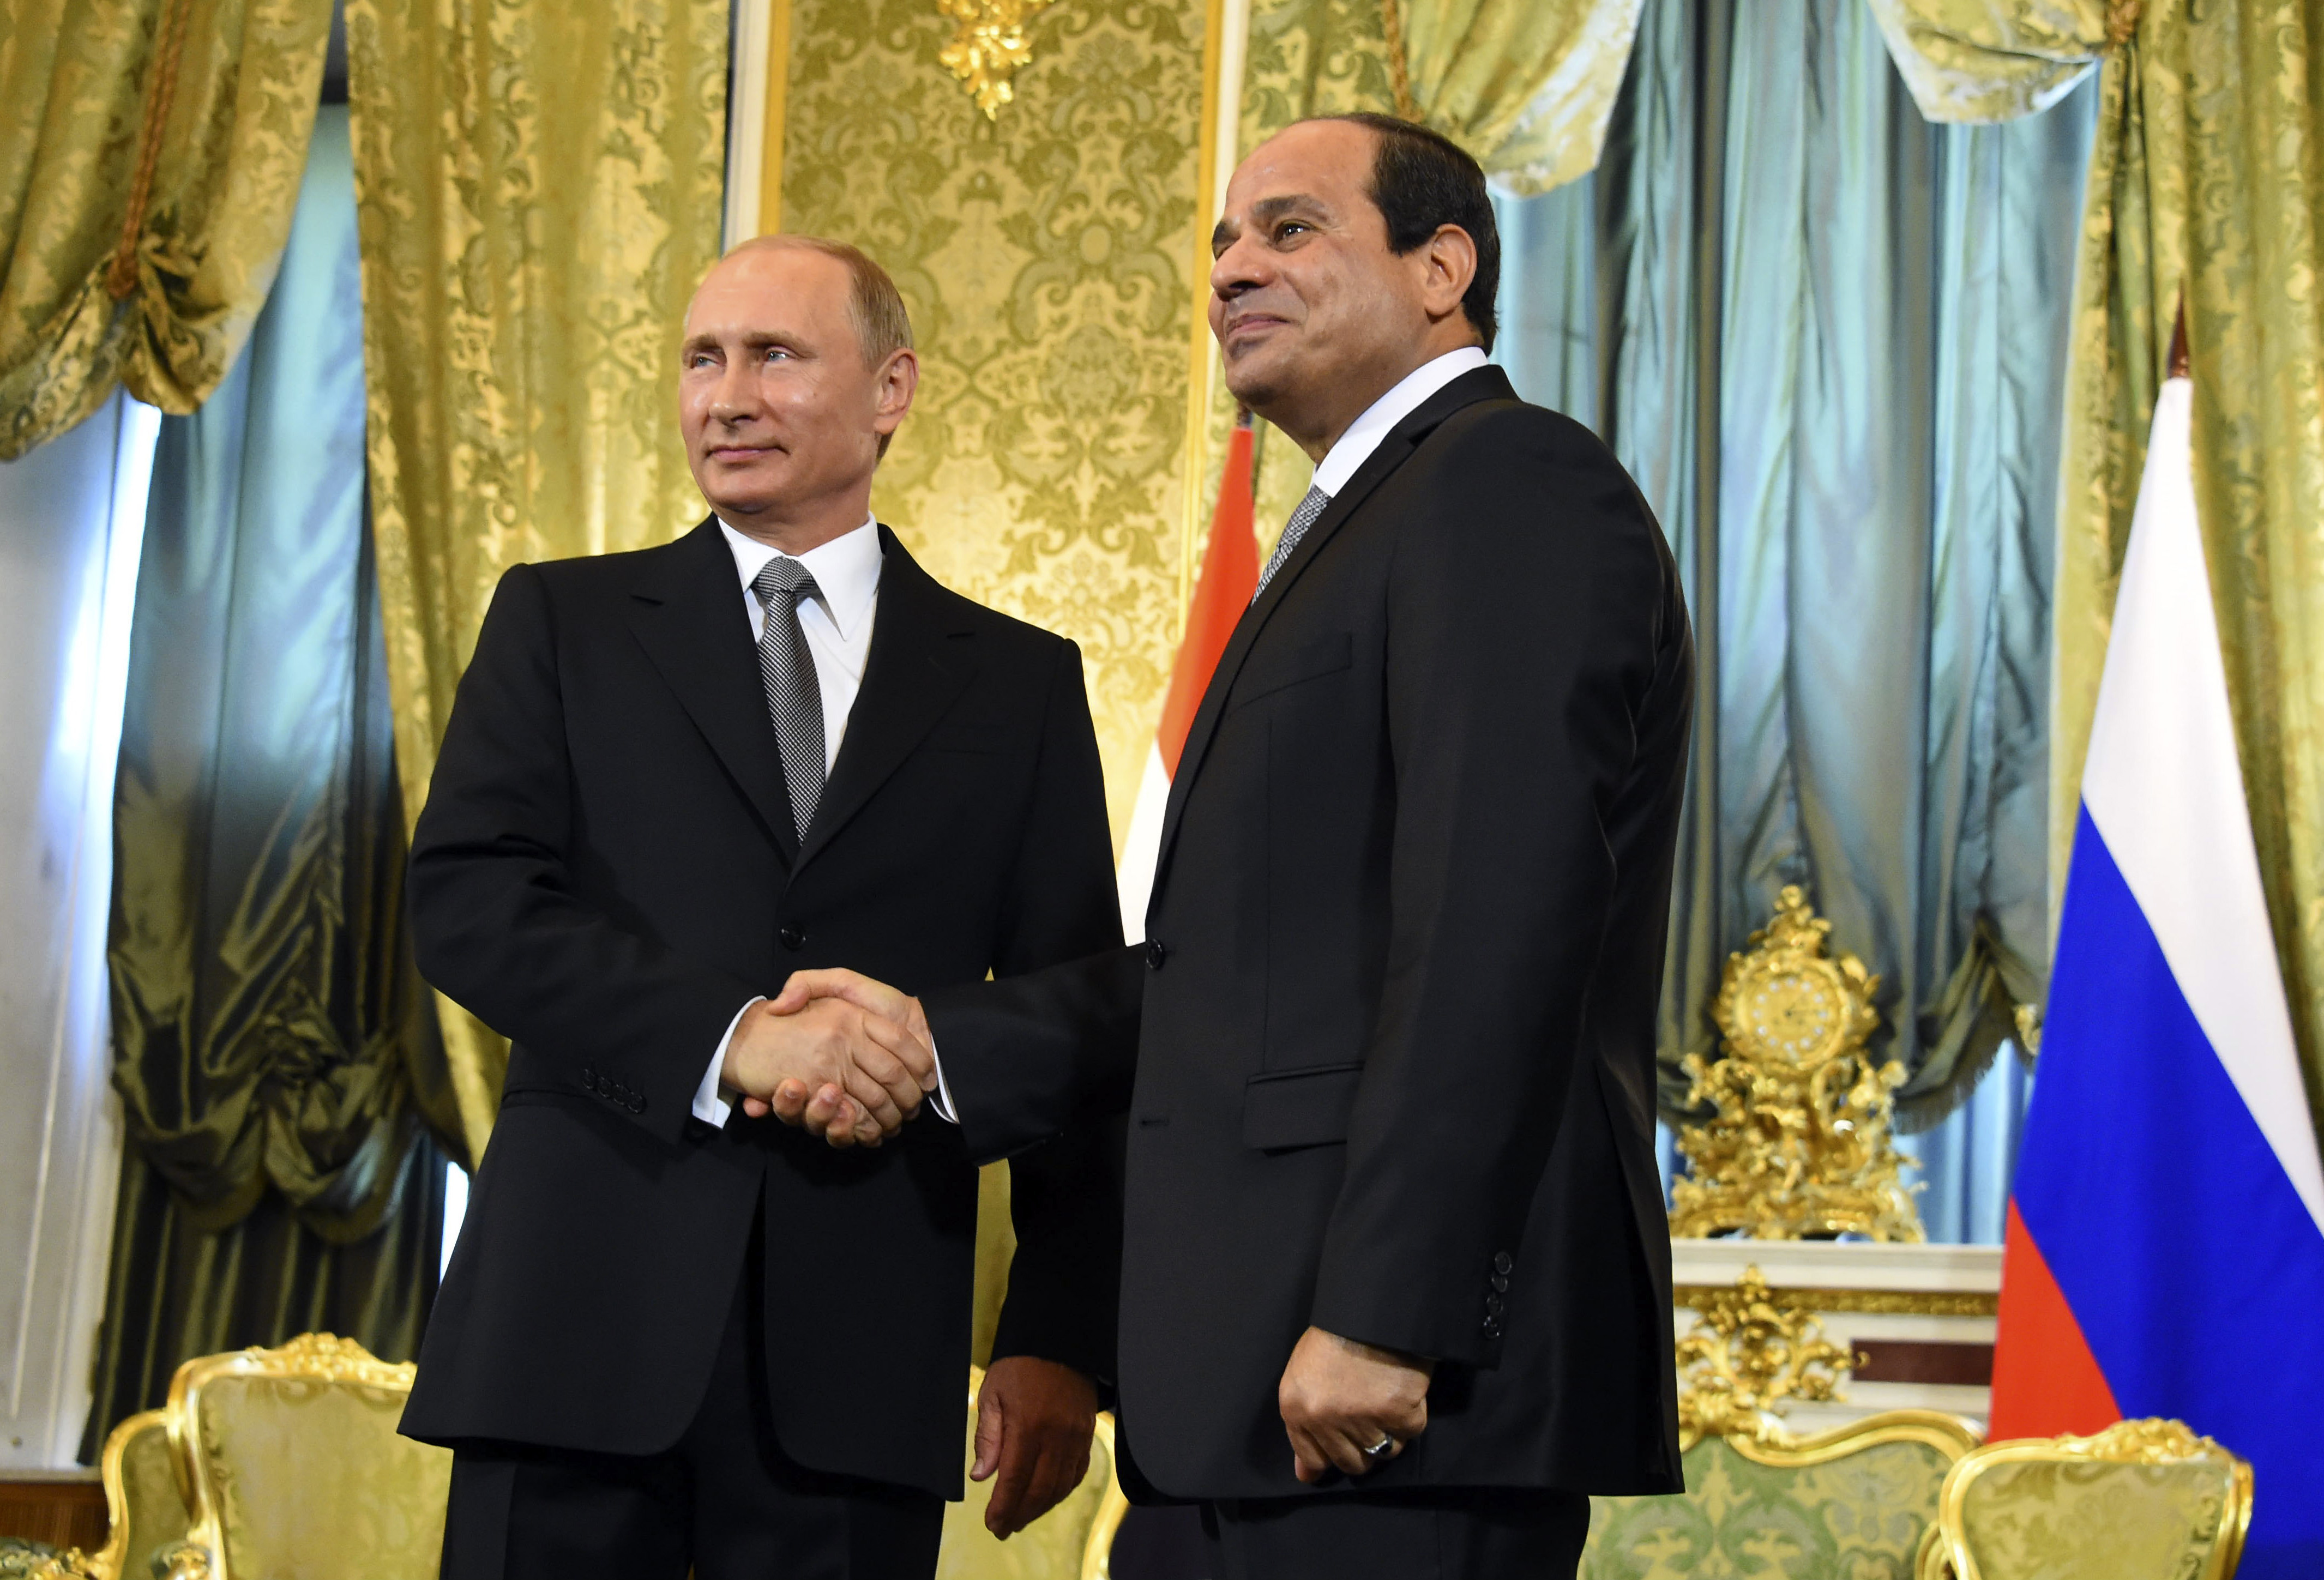 Russia negotiates deal for its warplanes to use Egypt bases